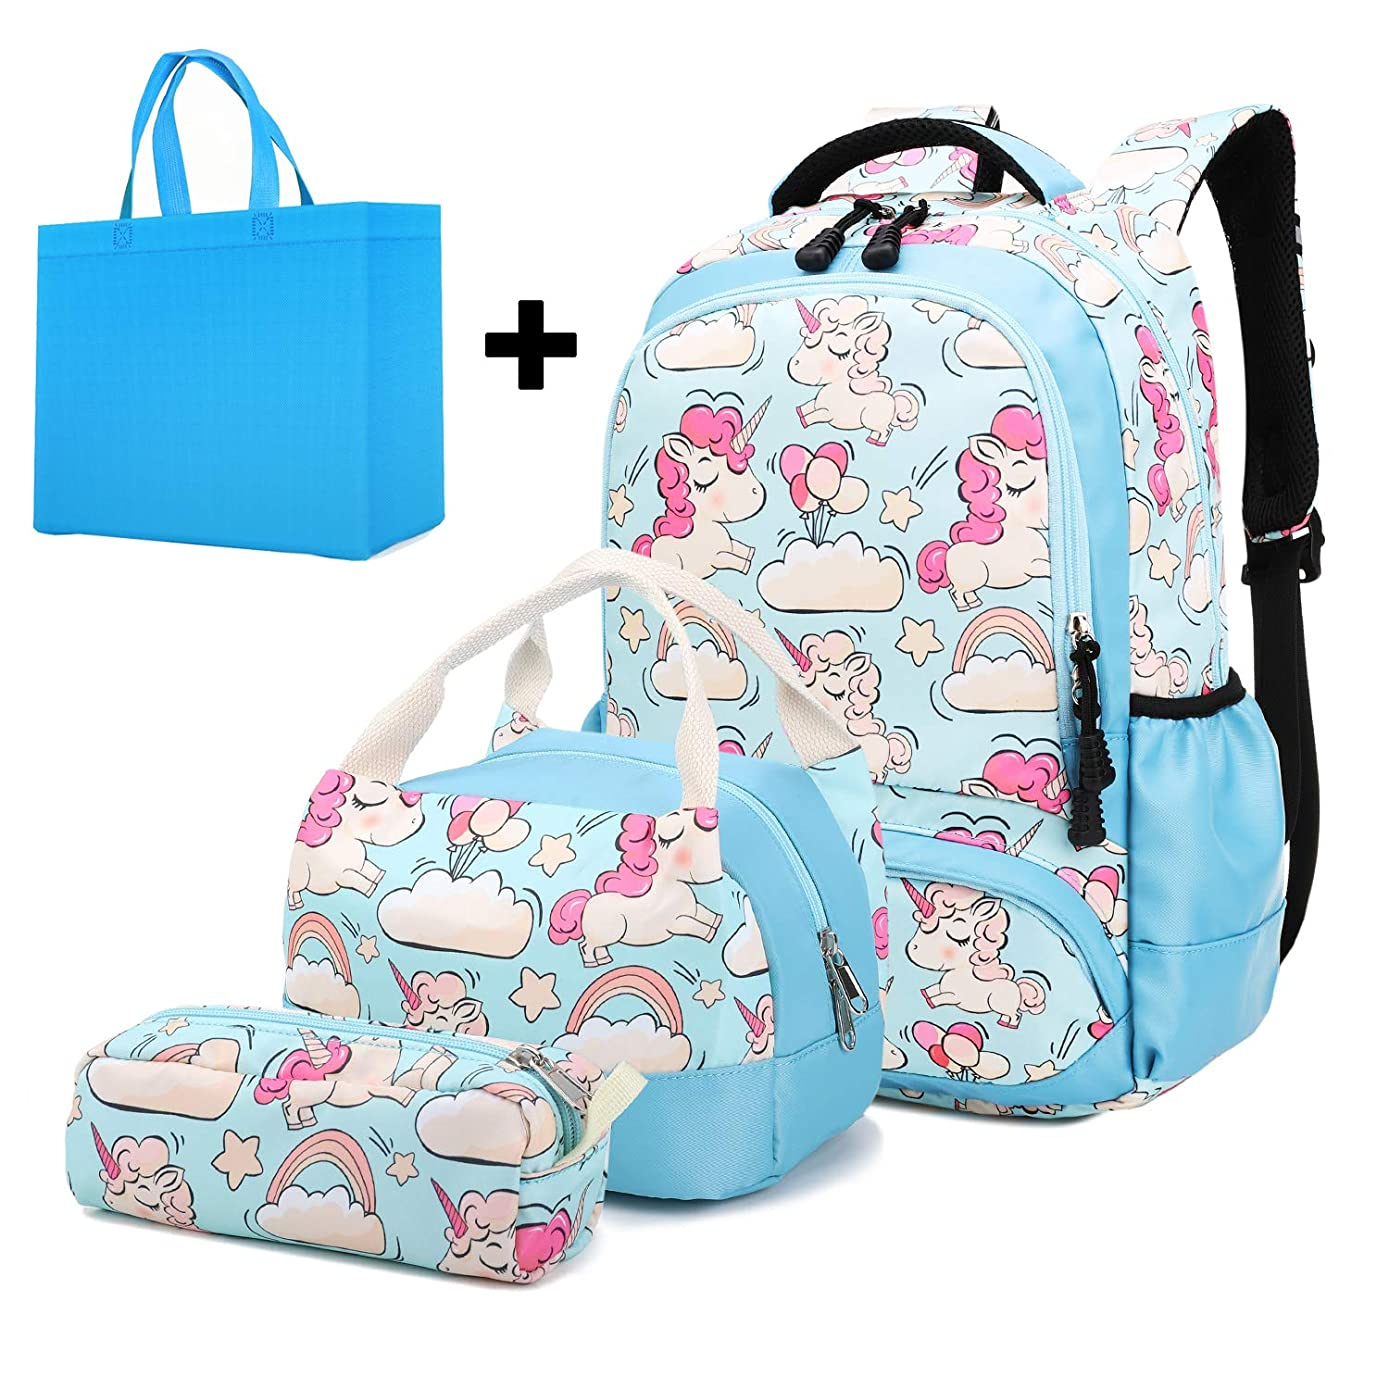 Unicorn Backpack for Girls School Backpack Kids Bookbags with Lunch Bag Pencil Case Teens School Bags for Girls Lightweight Travel Daypack 3 in 1 Sets